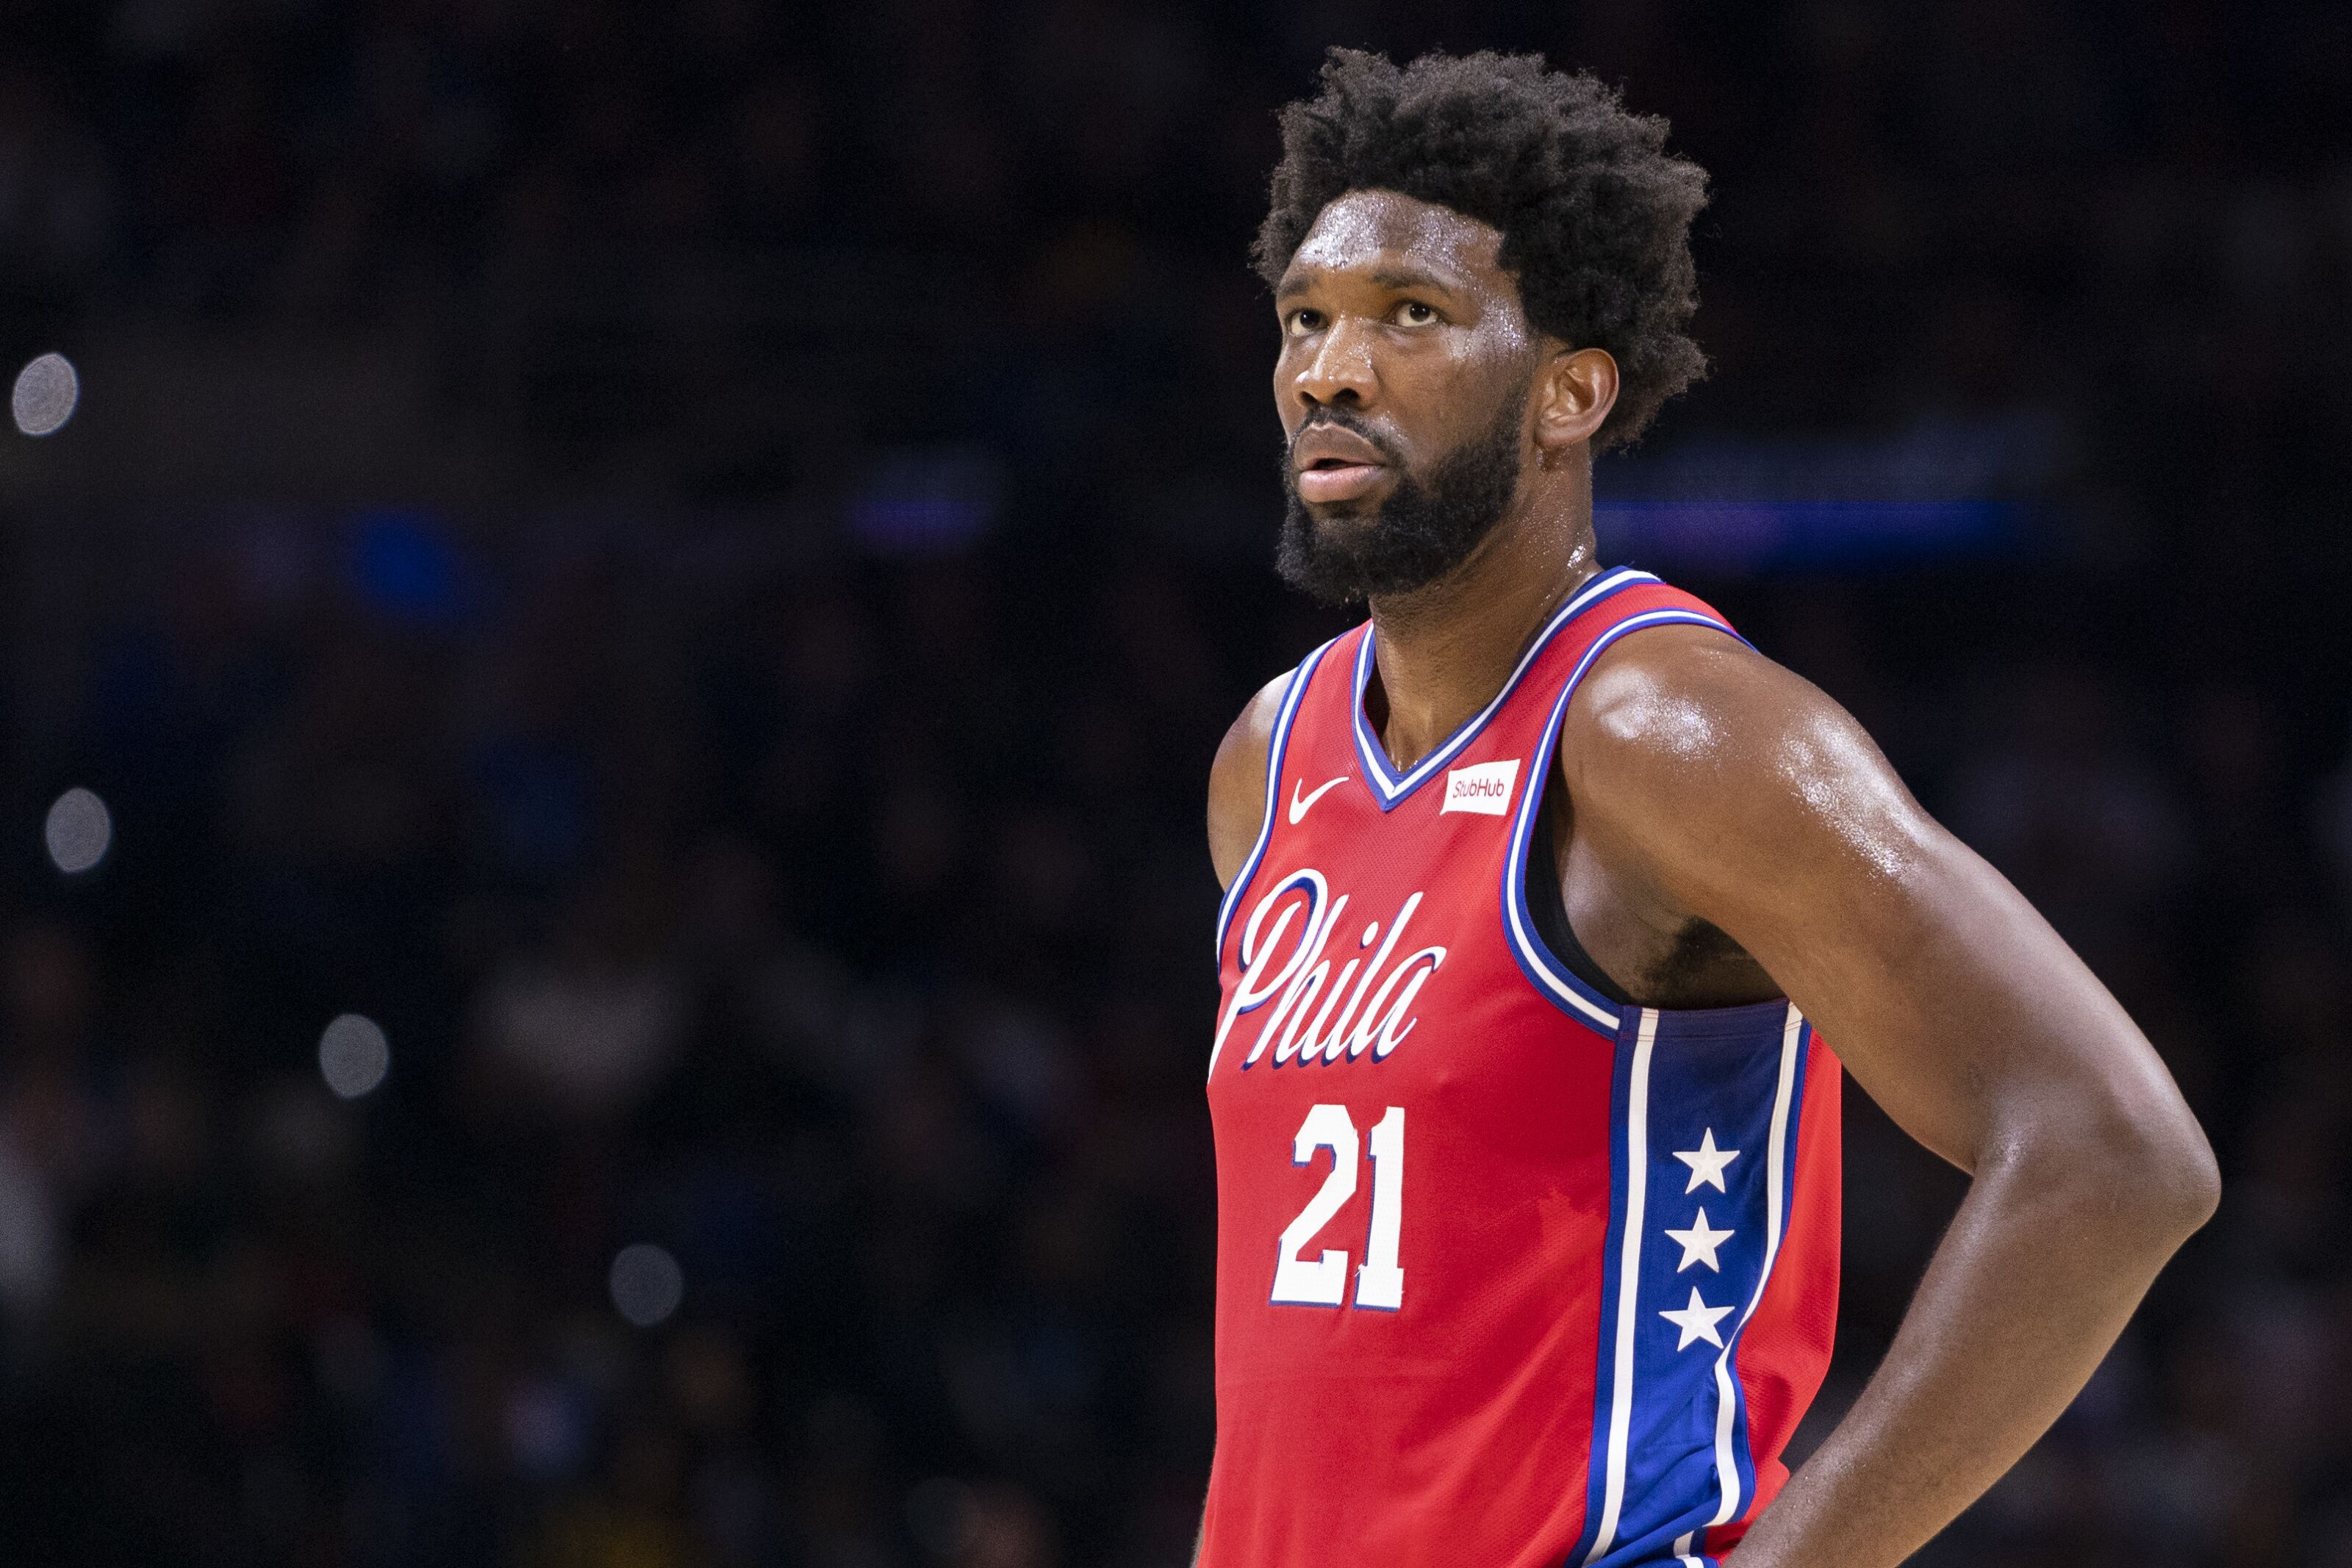 Notable difference in Philadelphia 76ers' use of Joel Embiid